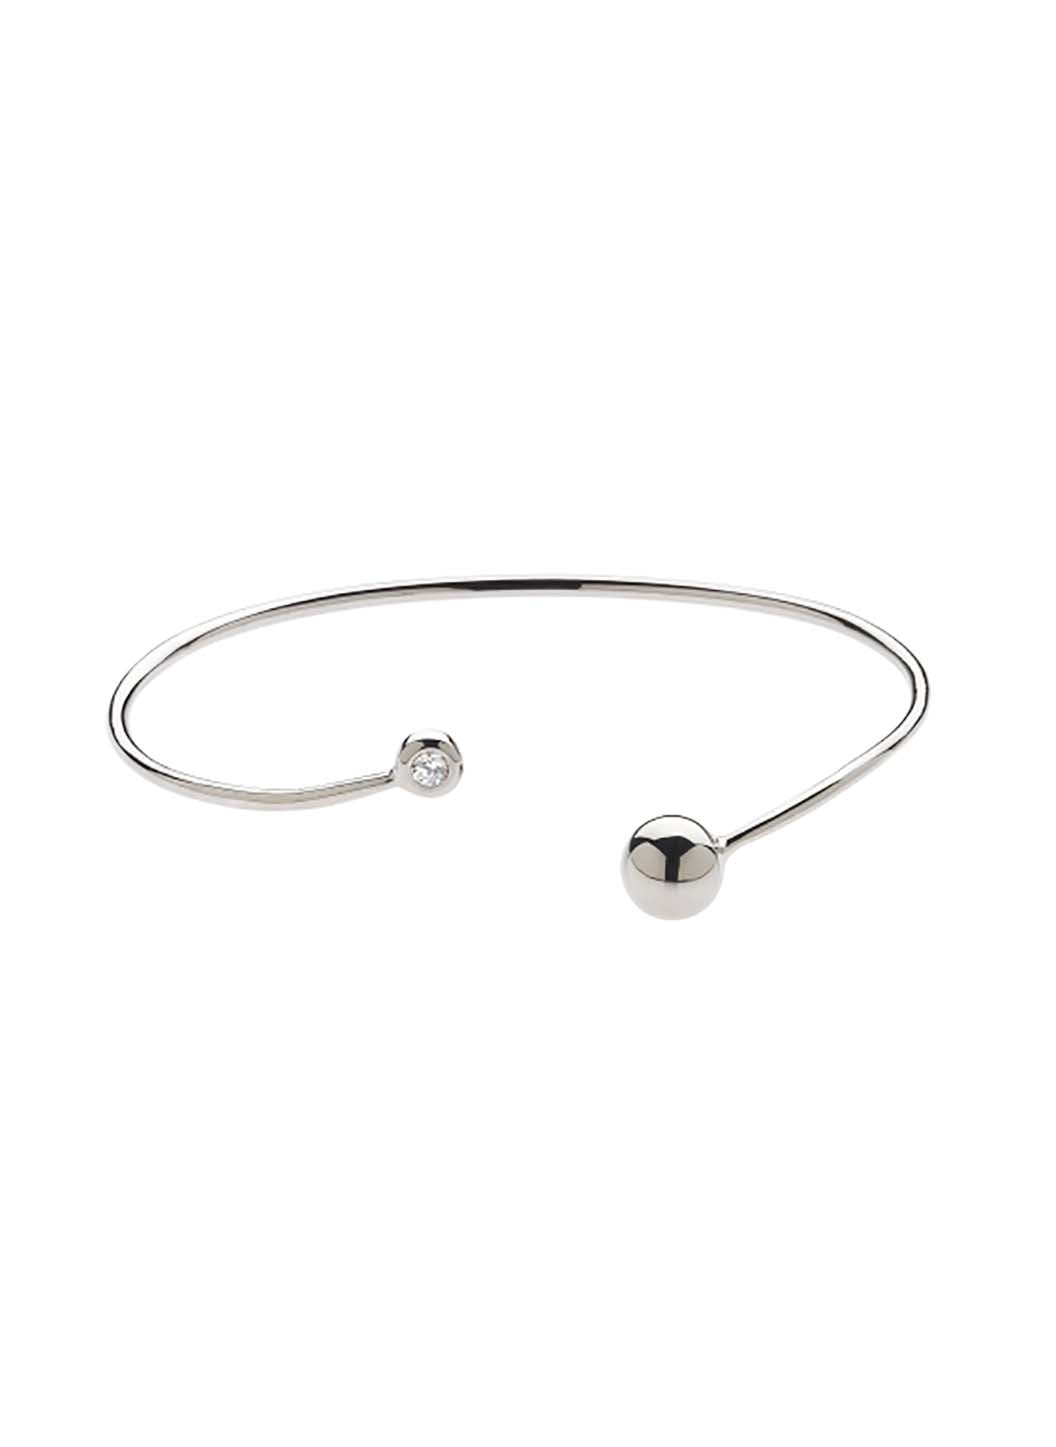 Rhodium Swarovski Ball Bangle